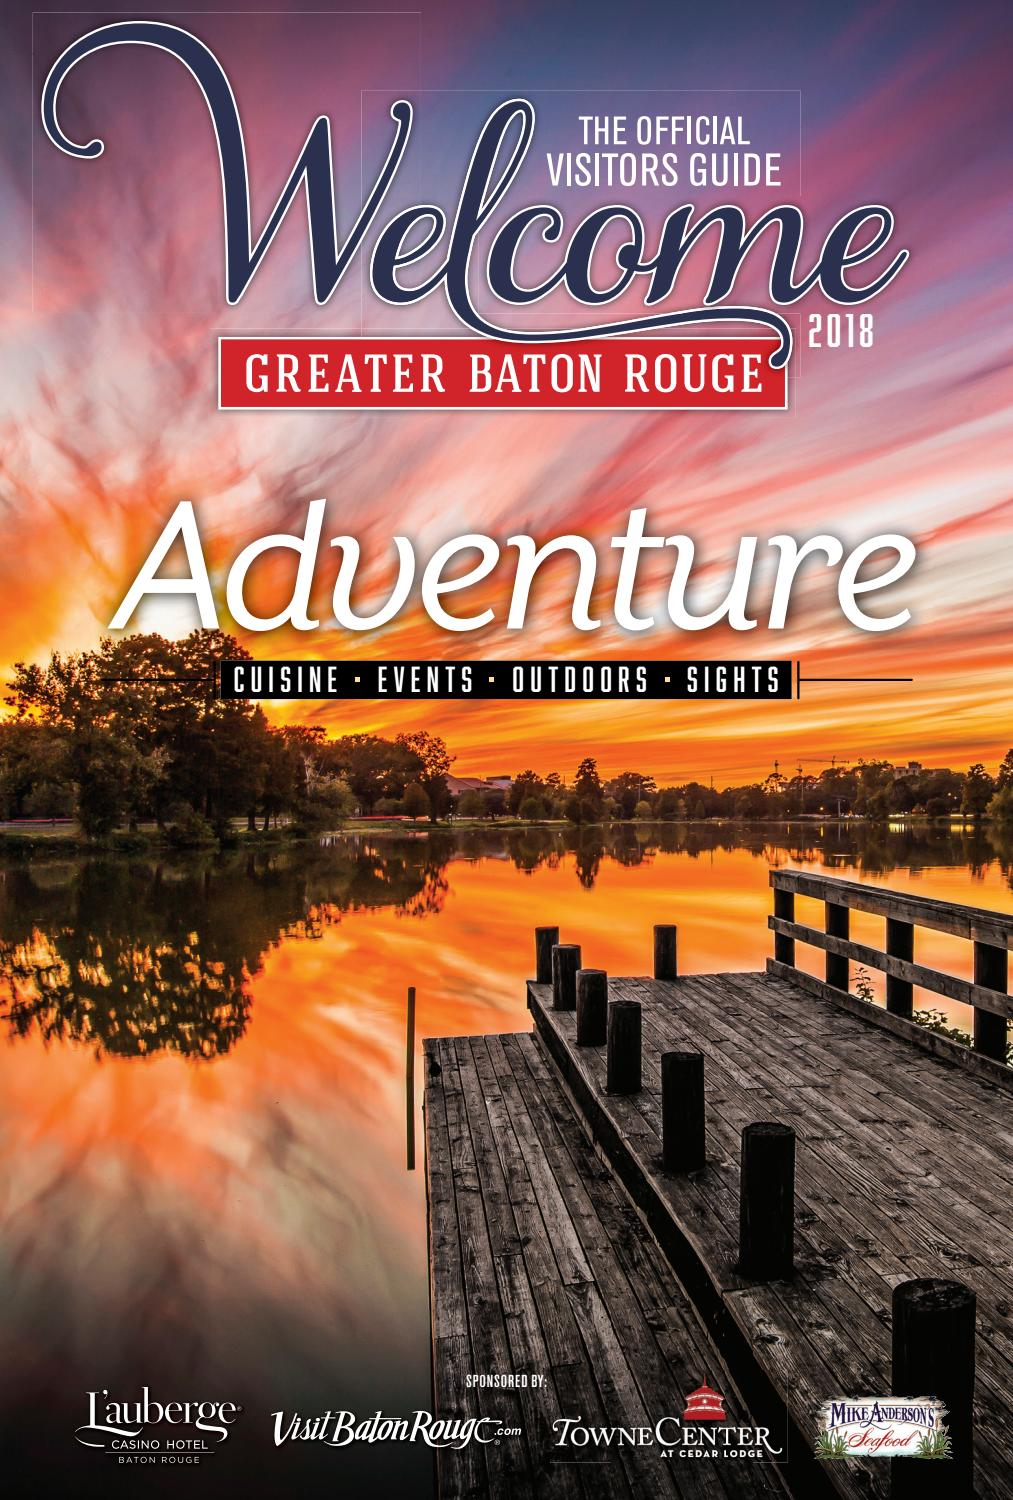 2018 Welcome: The Official Visitors Guide to Greater Baton Rouge by Baton Rouge Business Report - issuu